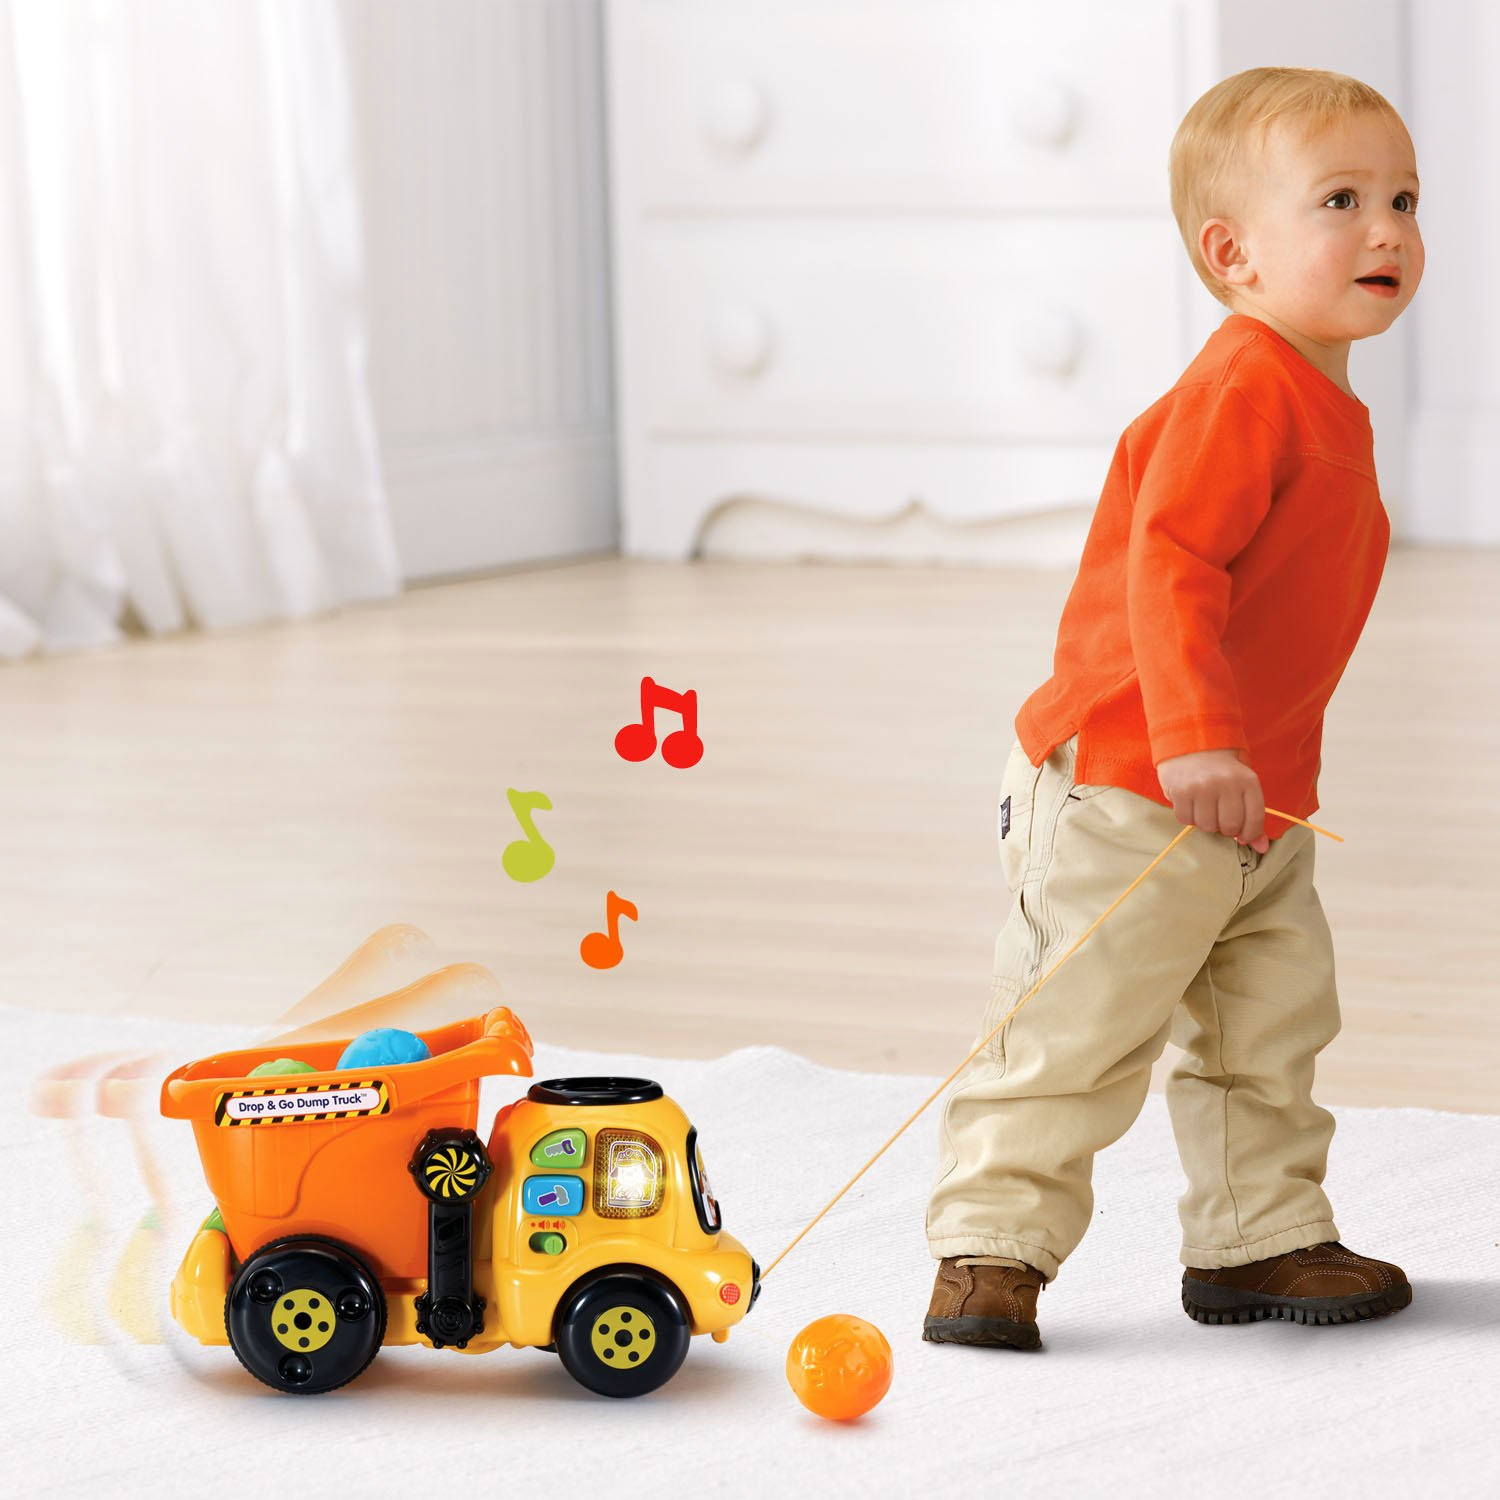 This is an image of a toddler with a VTech Drop and Go Dump Truck